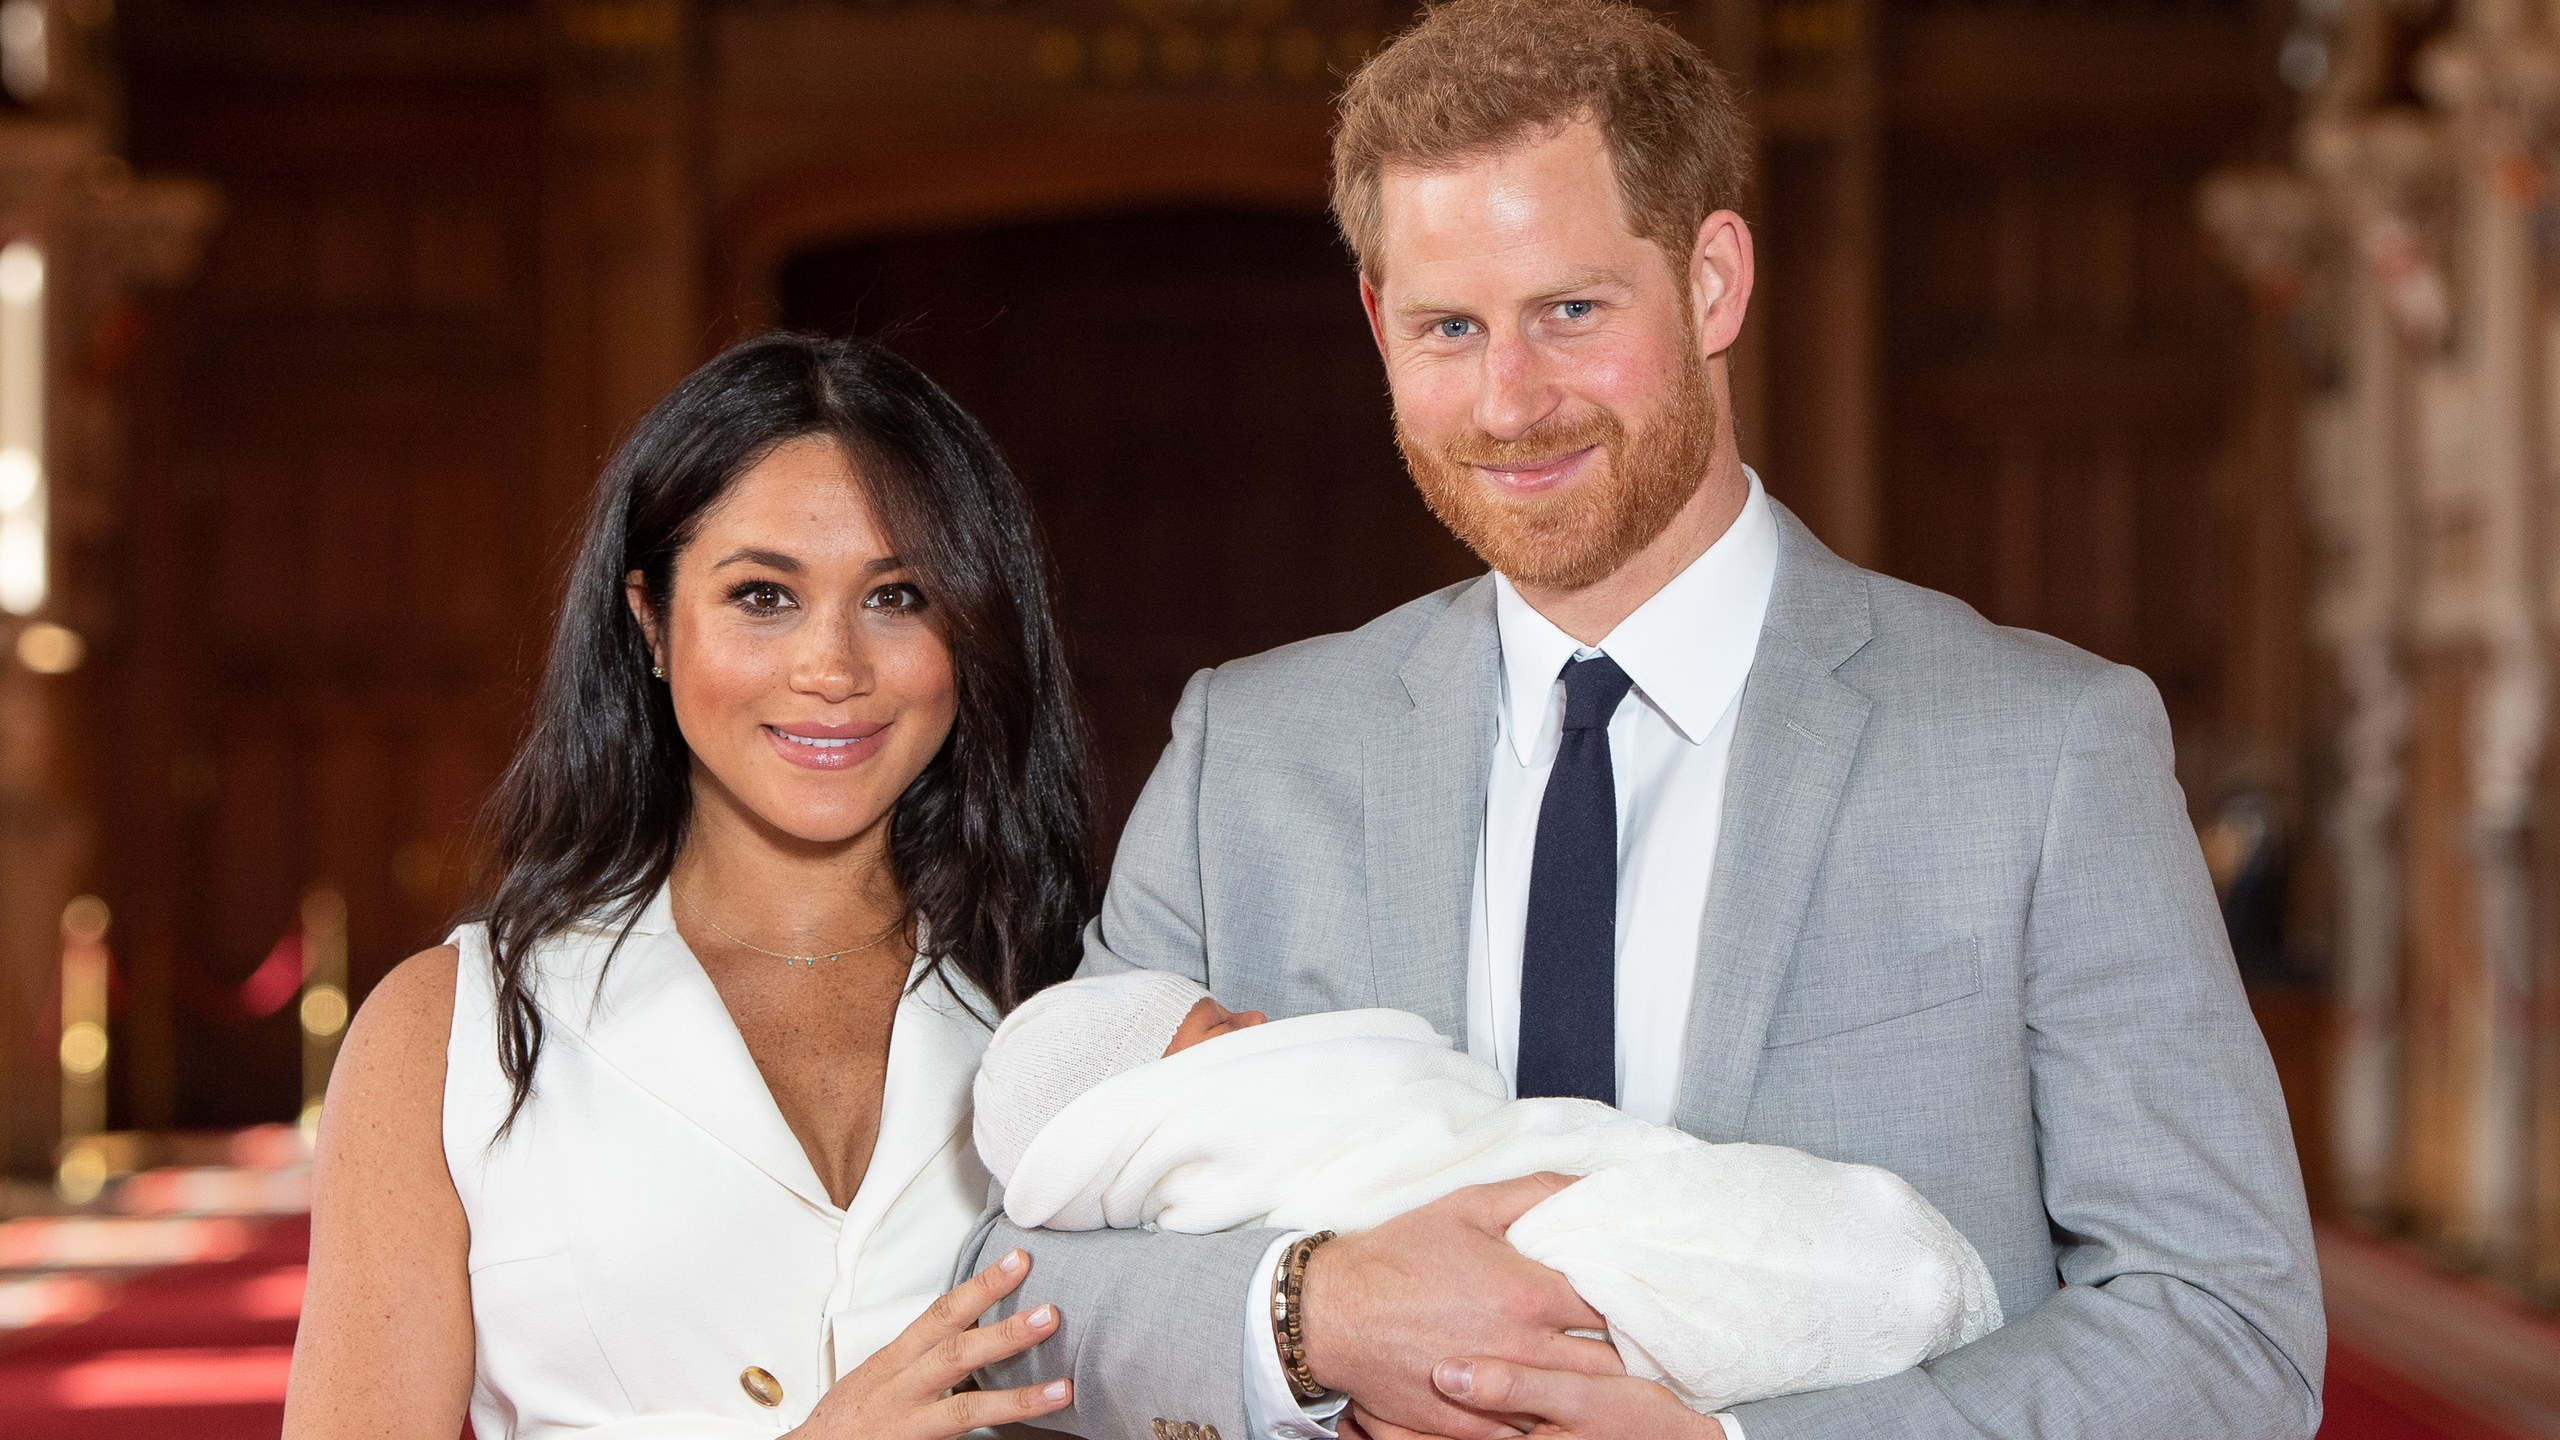 Everything We Know About Meghan Markle and Prince Harry's First Royal Tour With Archie